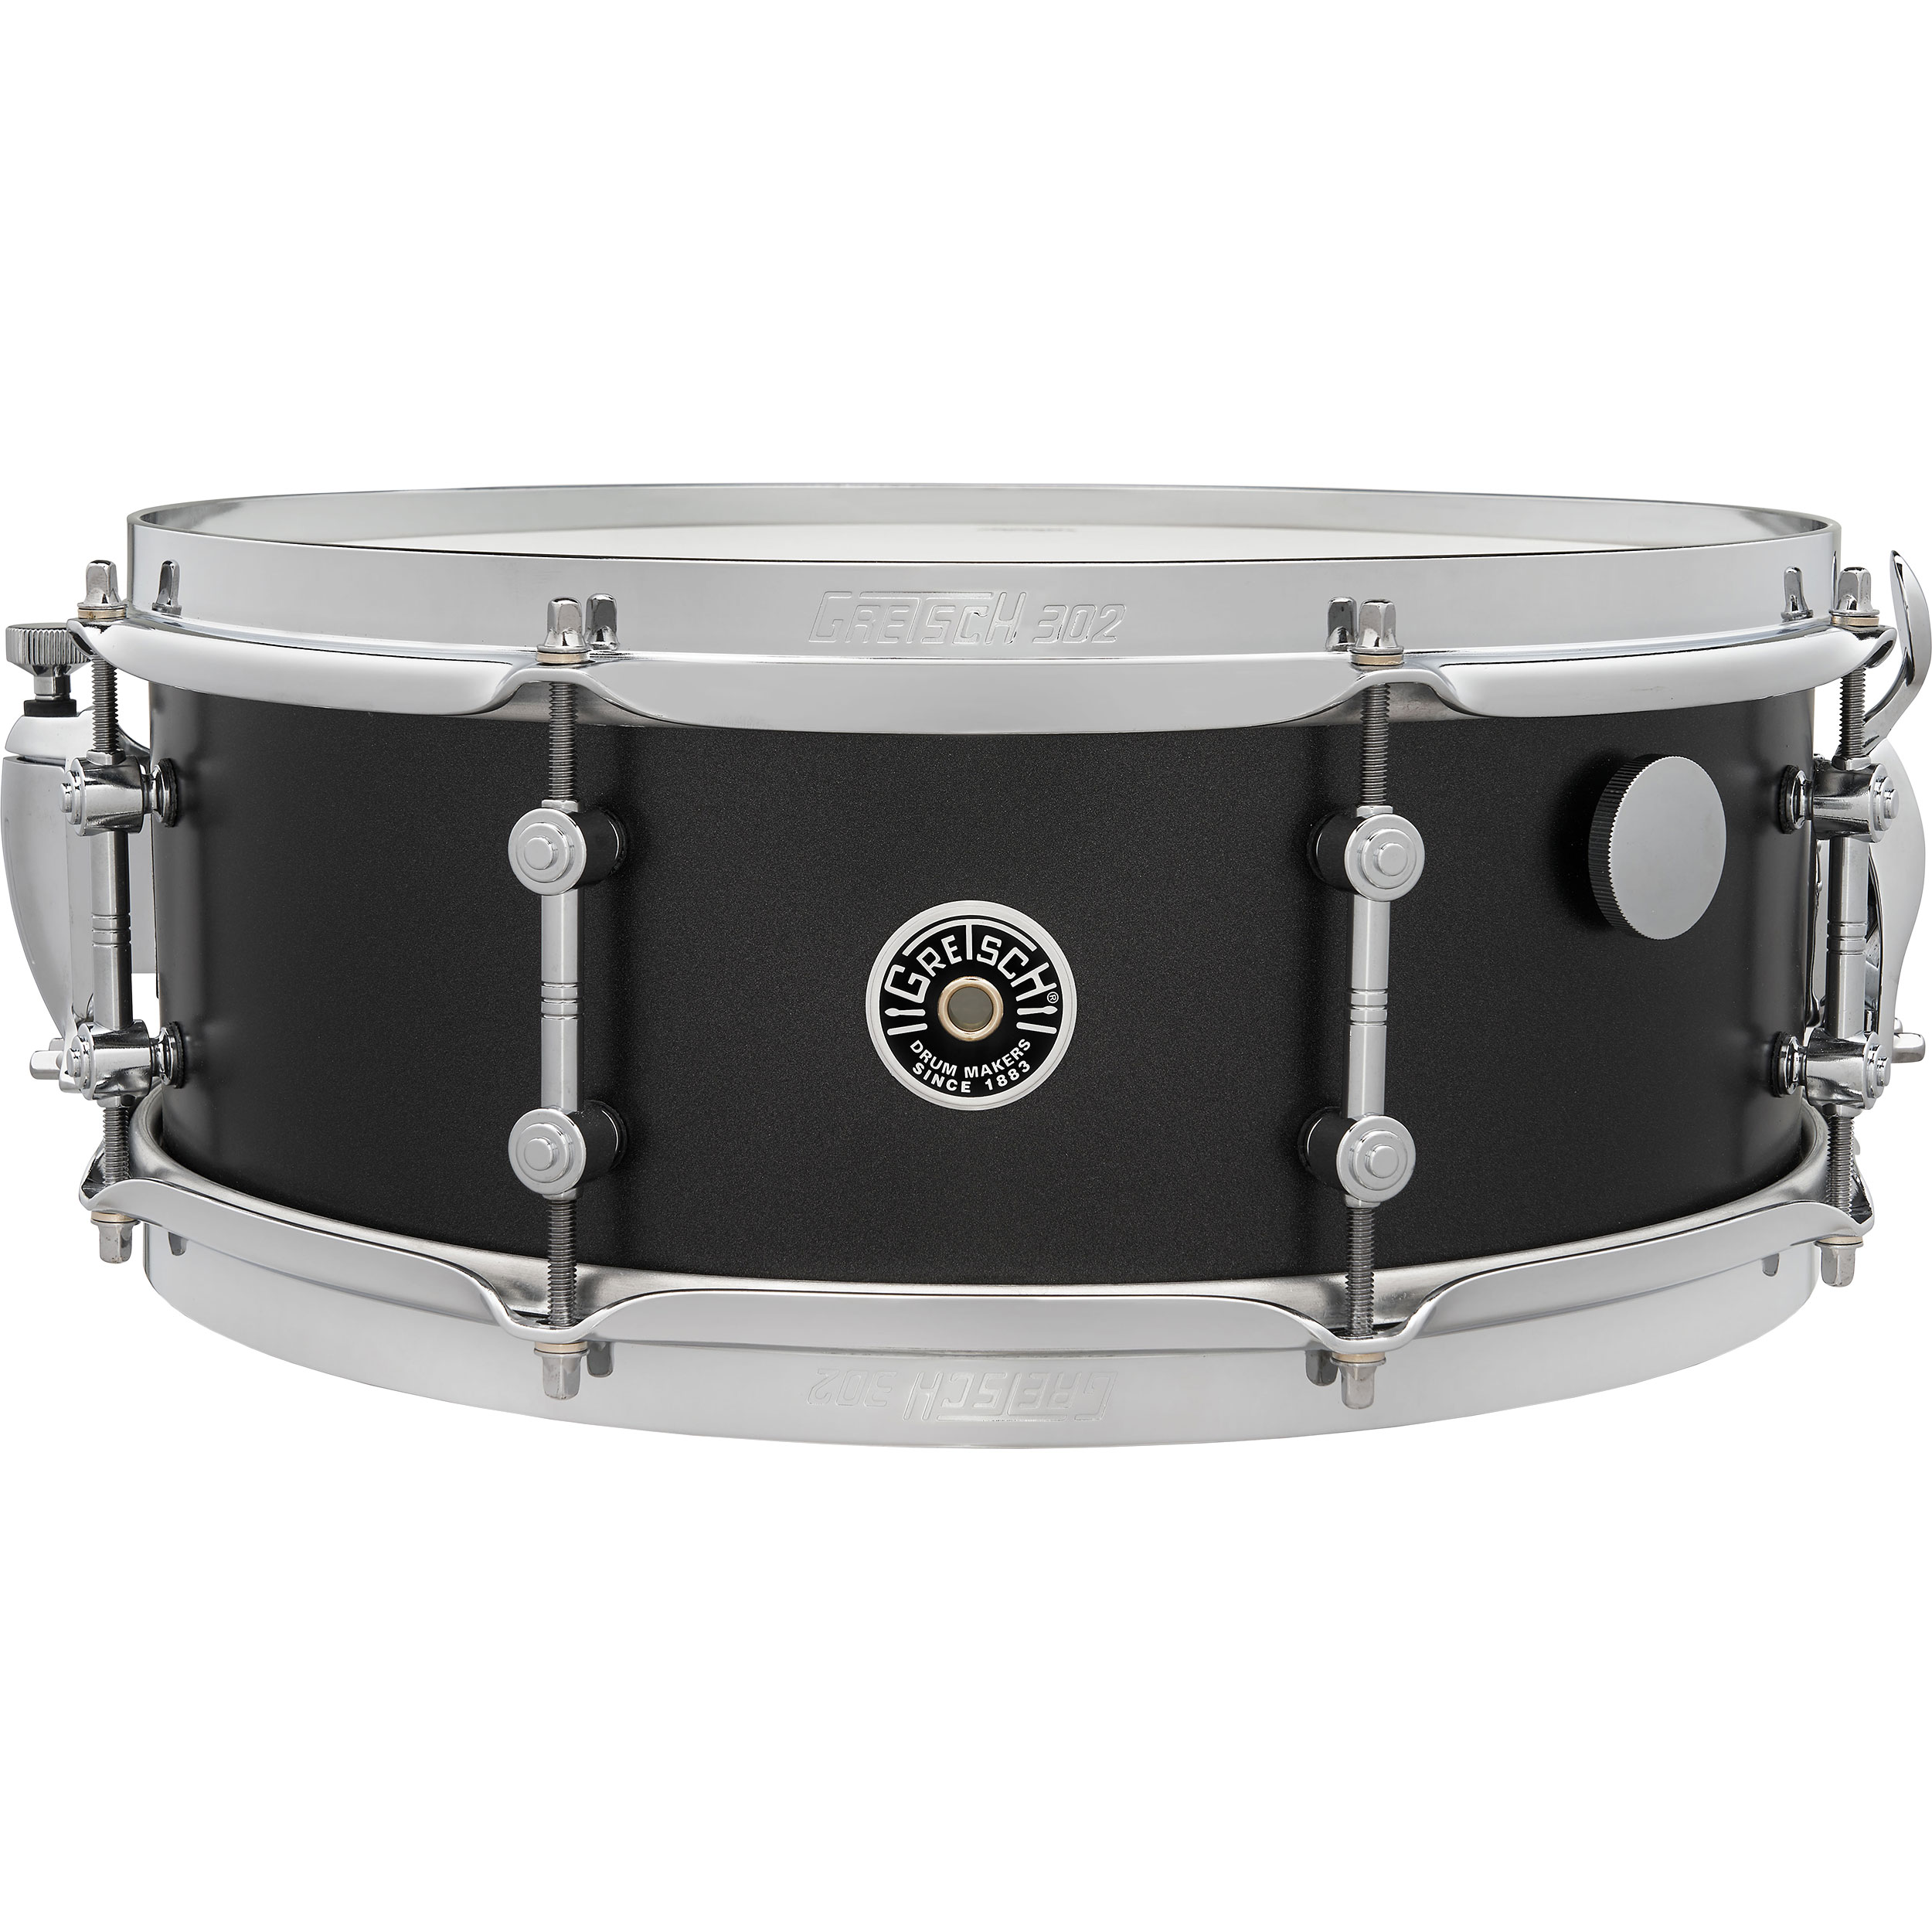 "Gretsch 5.5"" x 14"" Brooklyn Standard Snare Drum"